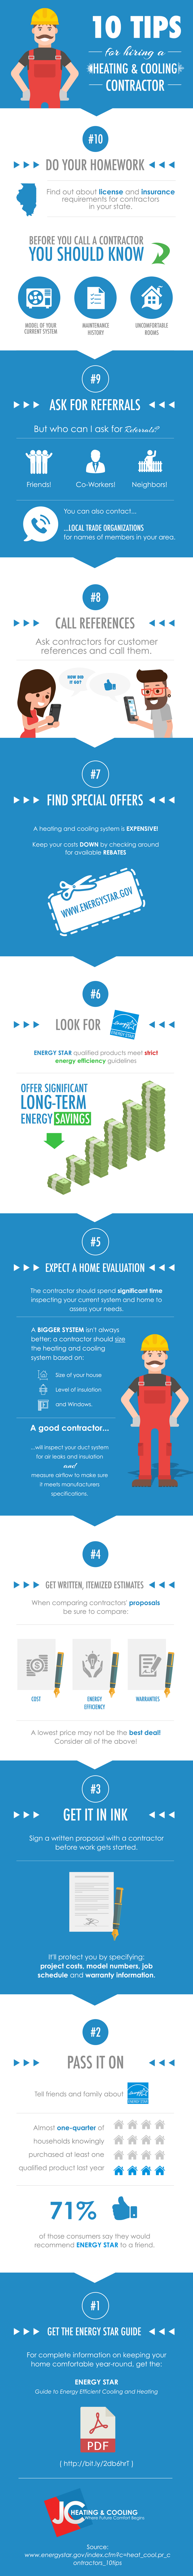 how to find the best HVAC contractor